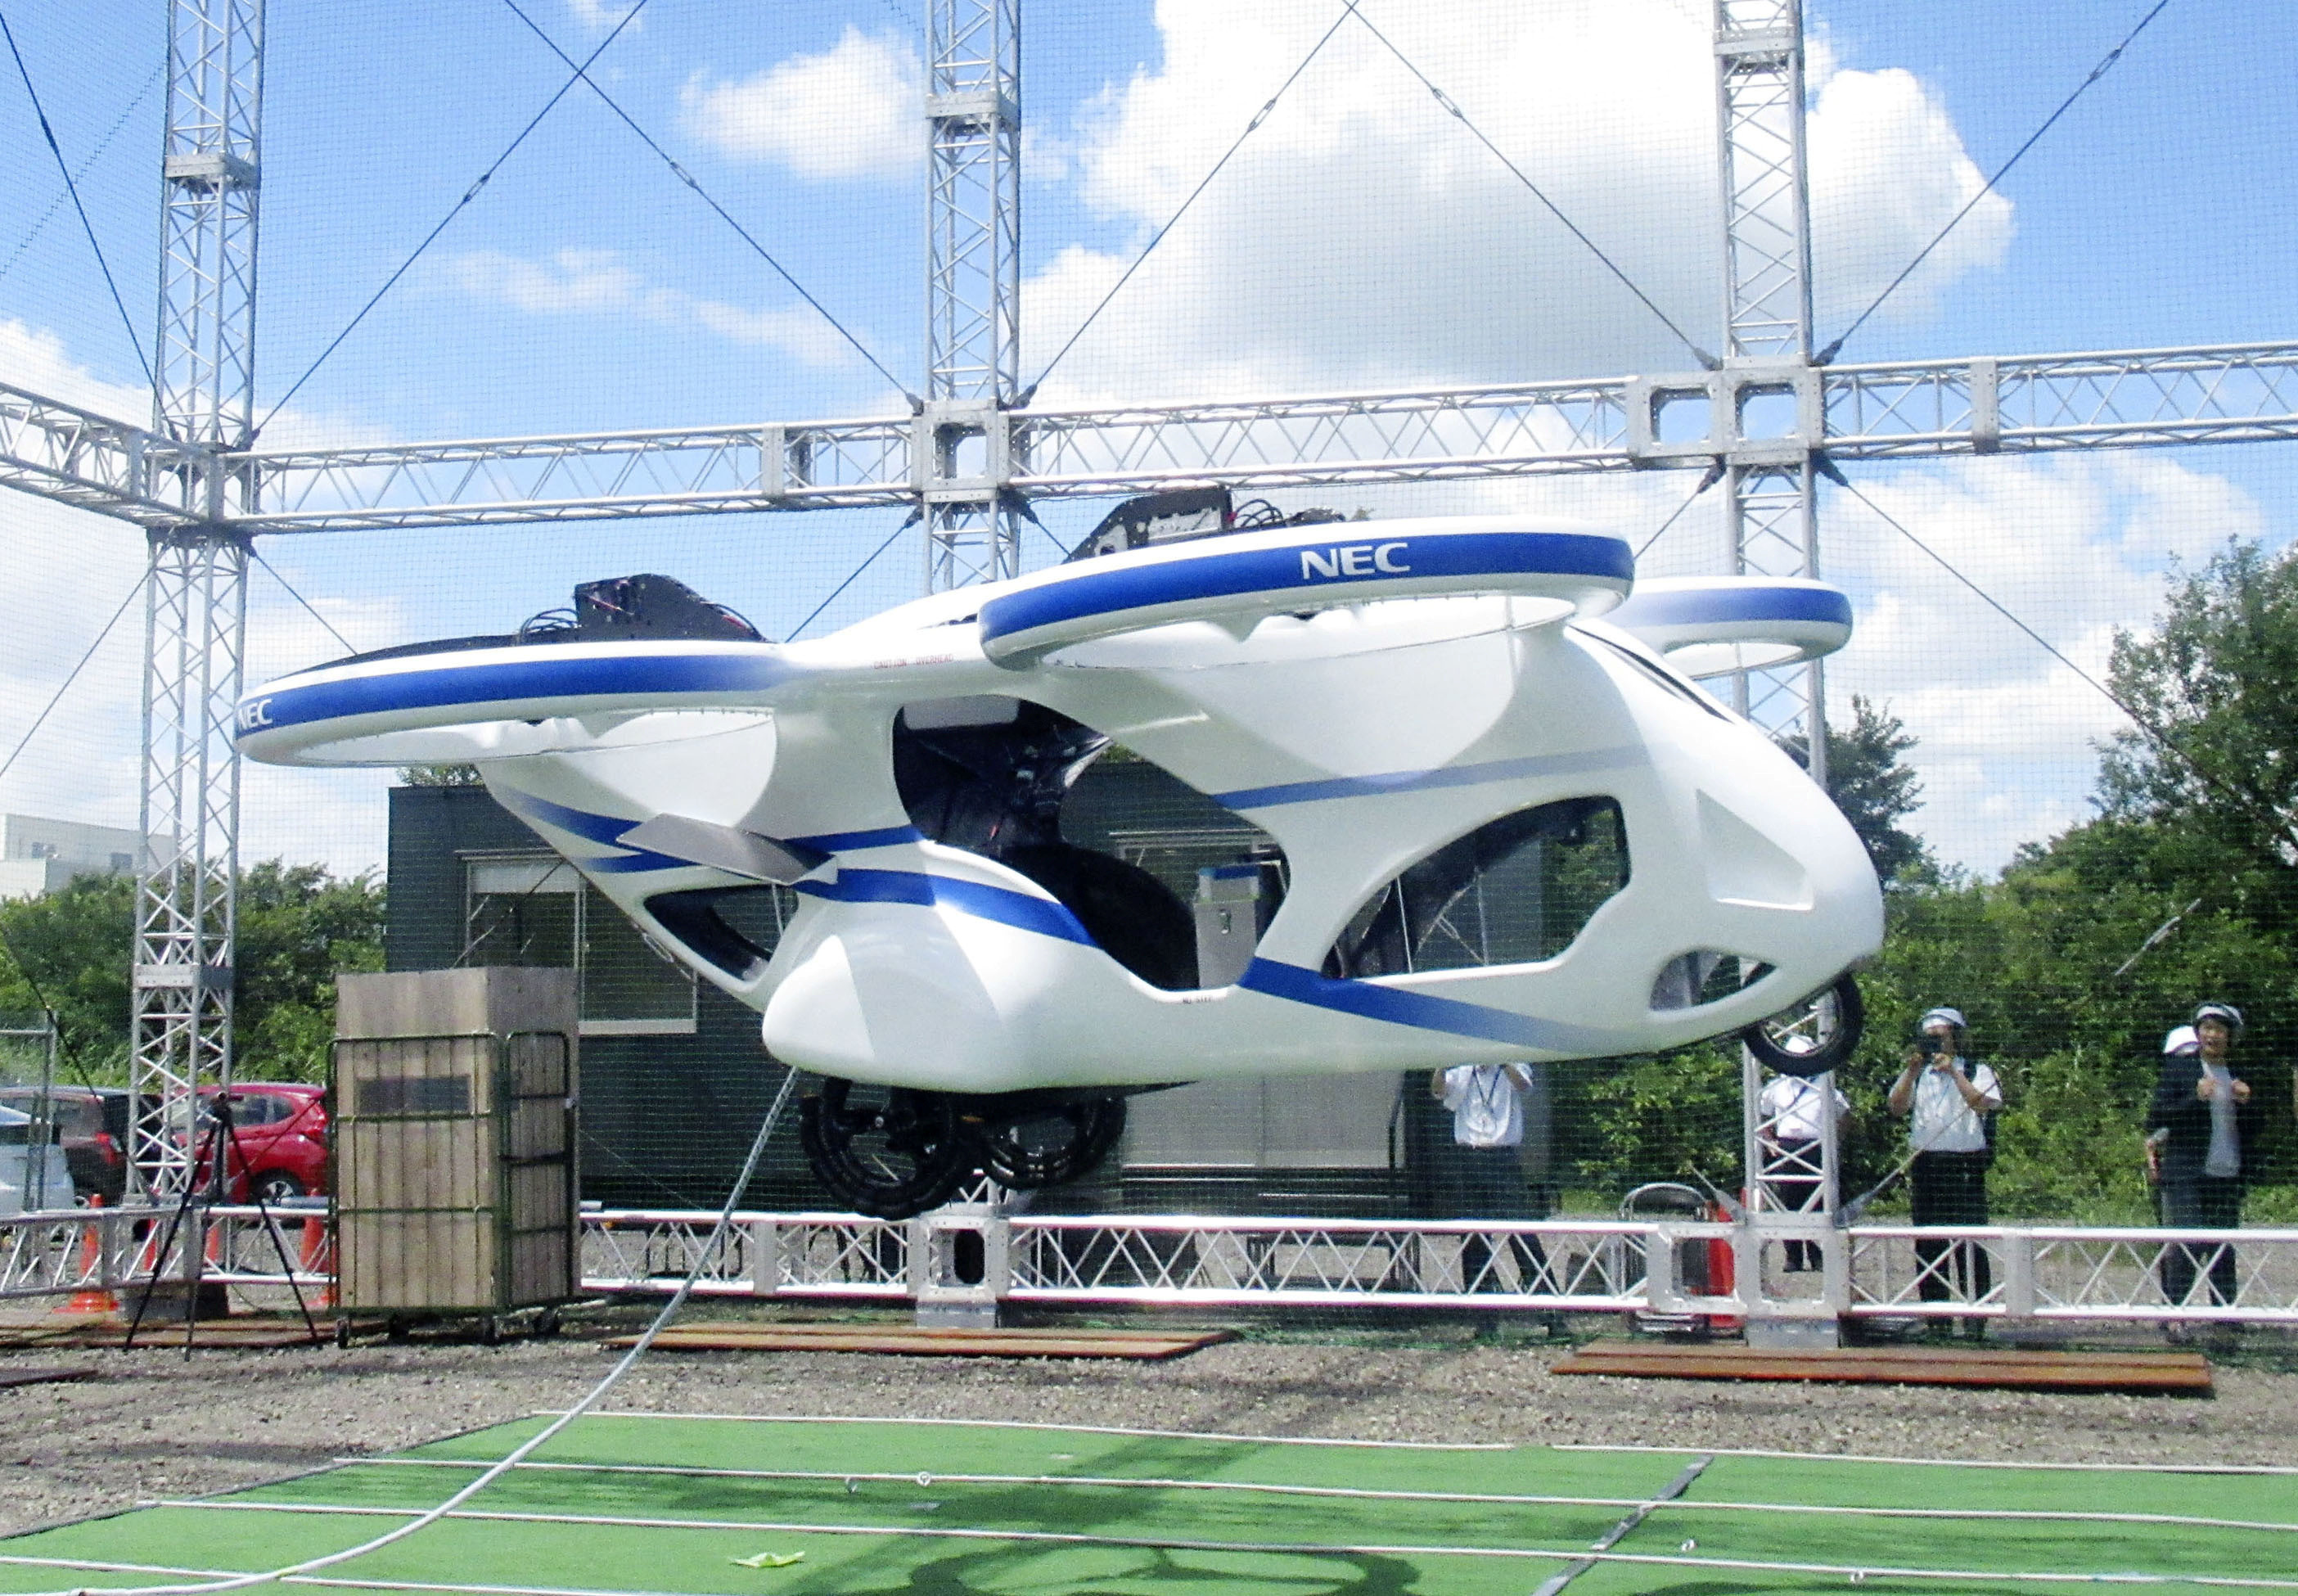 Japanese electronics maker NEC Corp. unveils a prototype of an electric flying car in Abiko, Chiba Prefecture, Japan, August 5, 2019. Picture taken August 5, 2019.  Mandatory credit Kyodo/via REUTERS ATTENTION EDITORS - THIS IMAGE WAS PROVIDED BY A THIRD PARTY. MANDATORY CREDIT. JAPAN OUT. NO COMMERCIAL OR EDITORIAL SALES IN JAPAN. - RC1D23074D10